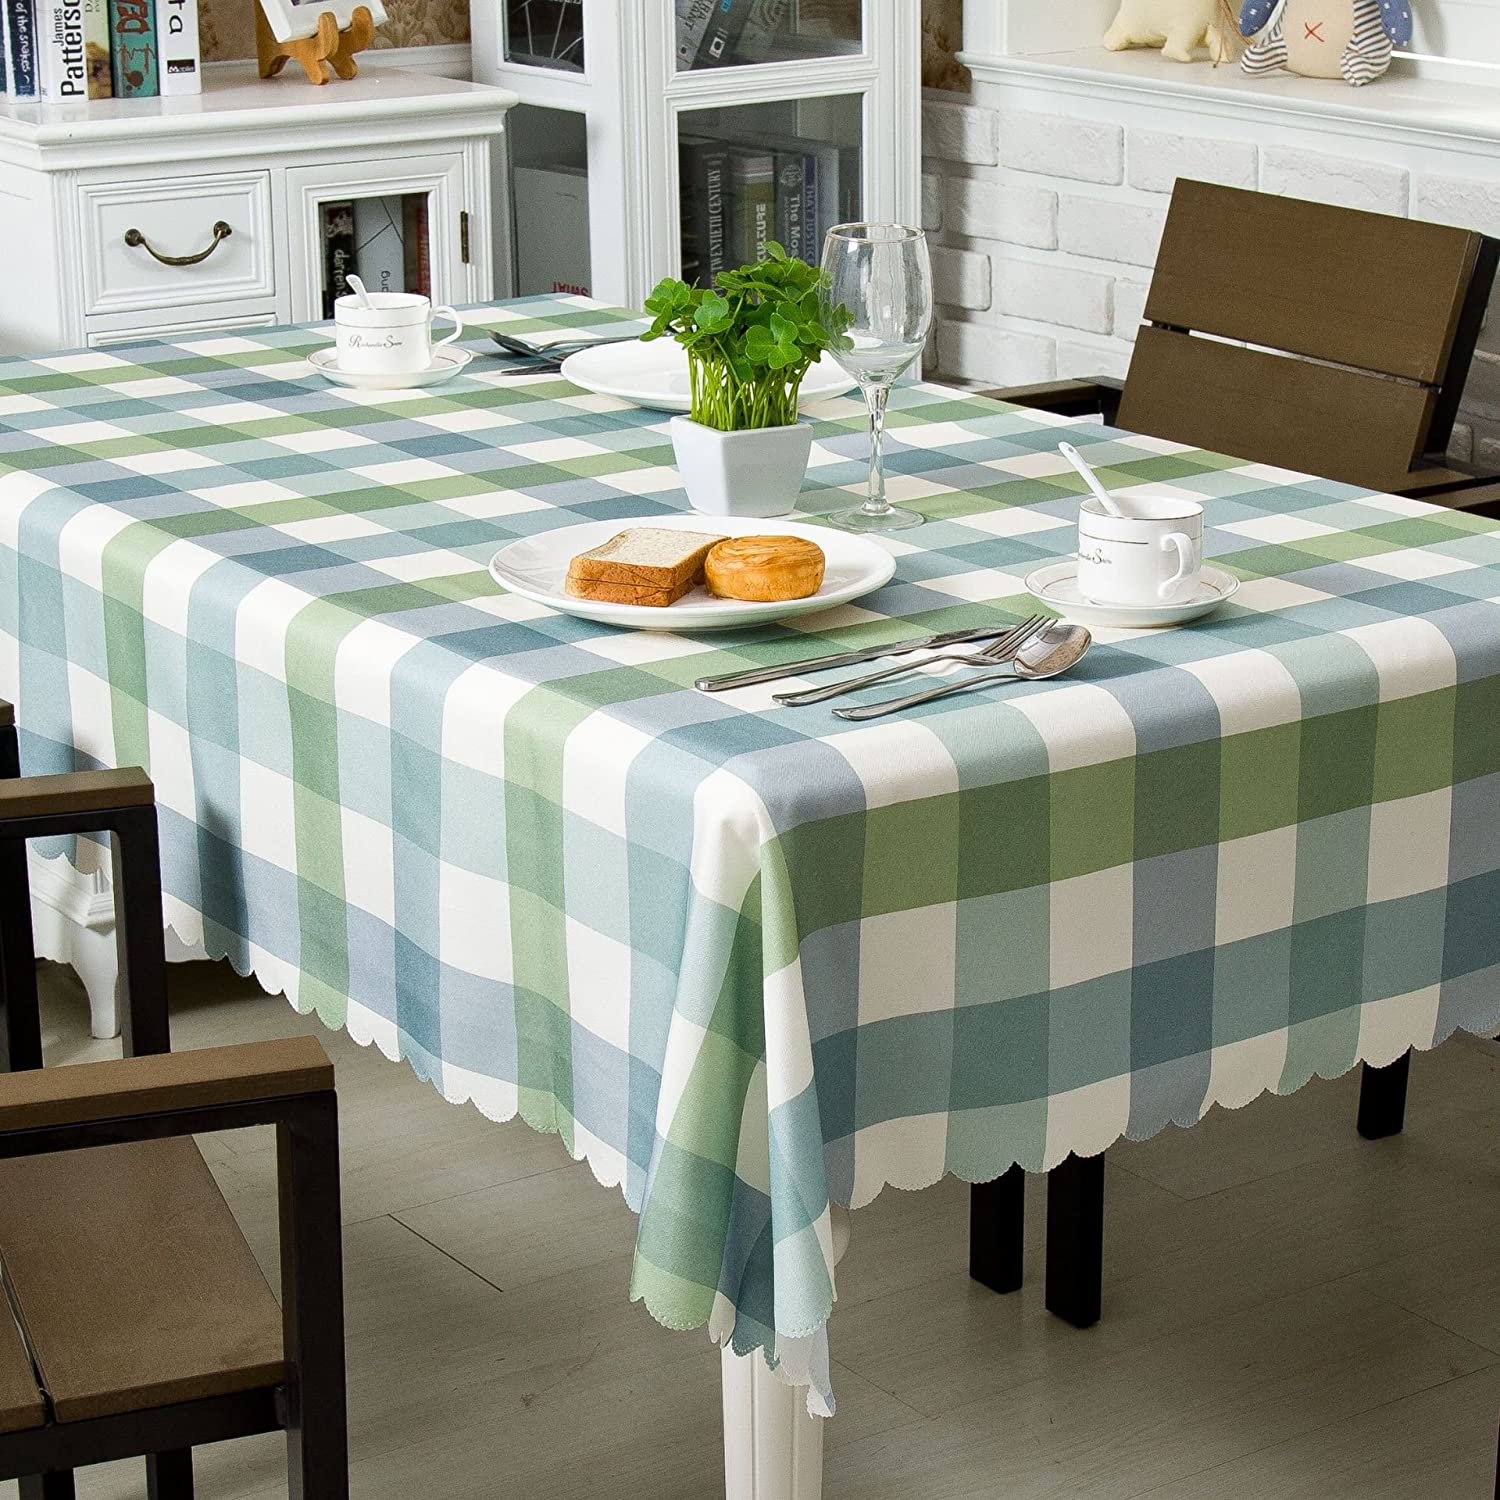 Ostepdecor Water Resistant Tablecloth Table Cloths Rectangle Polyester Decorative Table Top Cover For Kitchen Dining Room End Table Rectangle Oblong 60 X 84 Inches 6 8 Seats Green Kitchen Dining Amazon Com